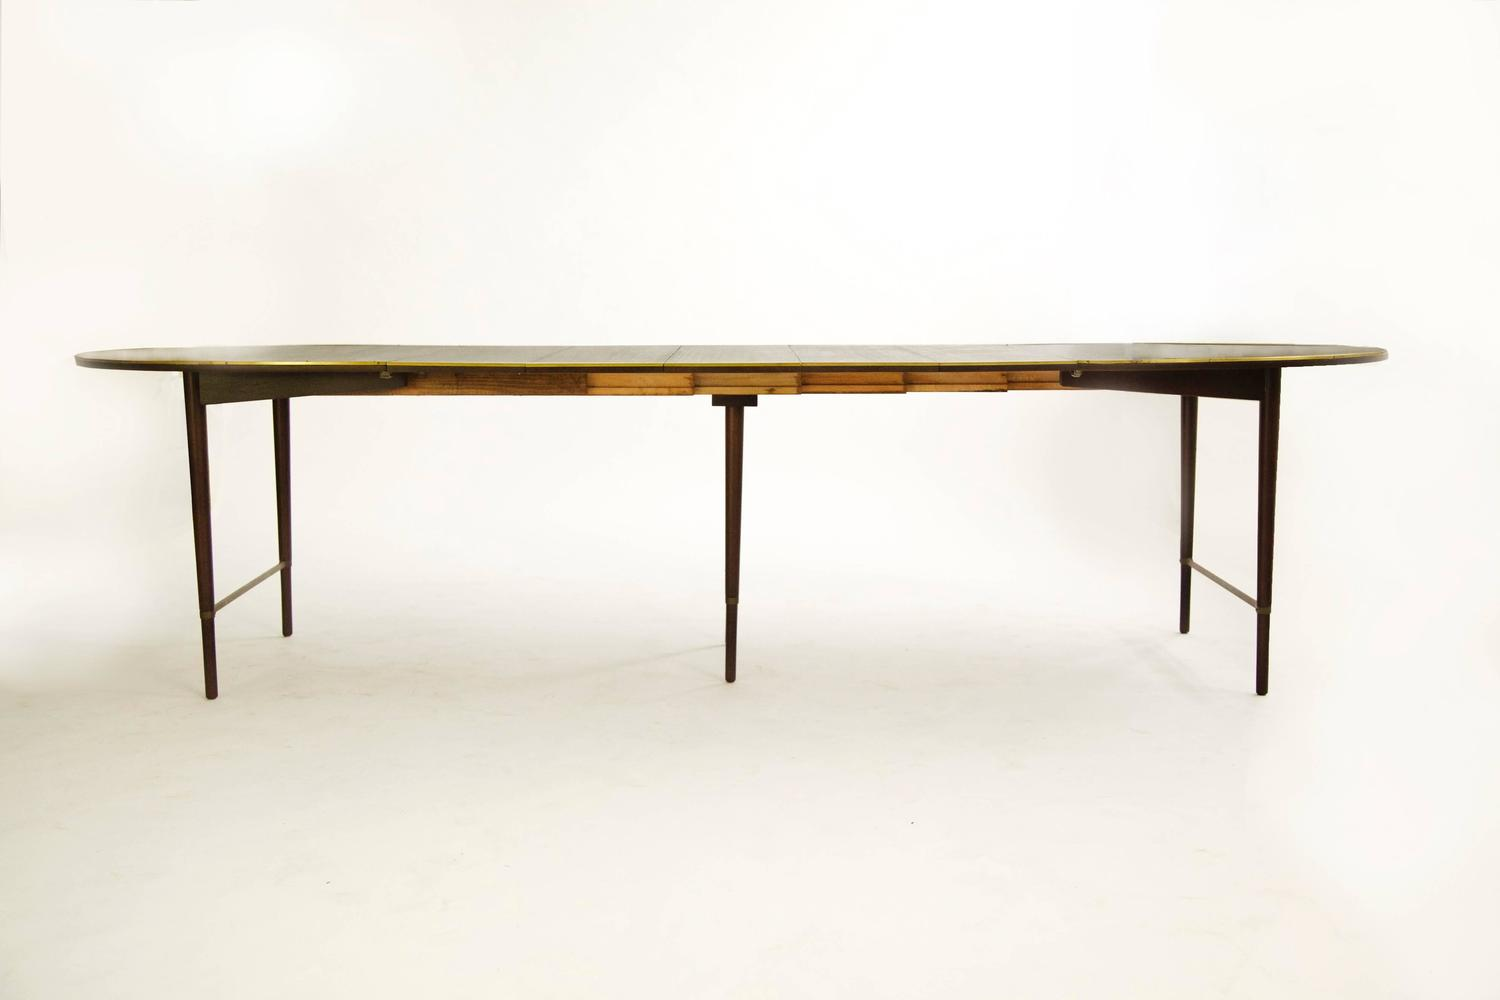 Paul mccobb dining table for sale at 1stdibs for 12 person dining table for sale